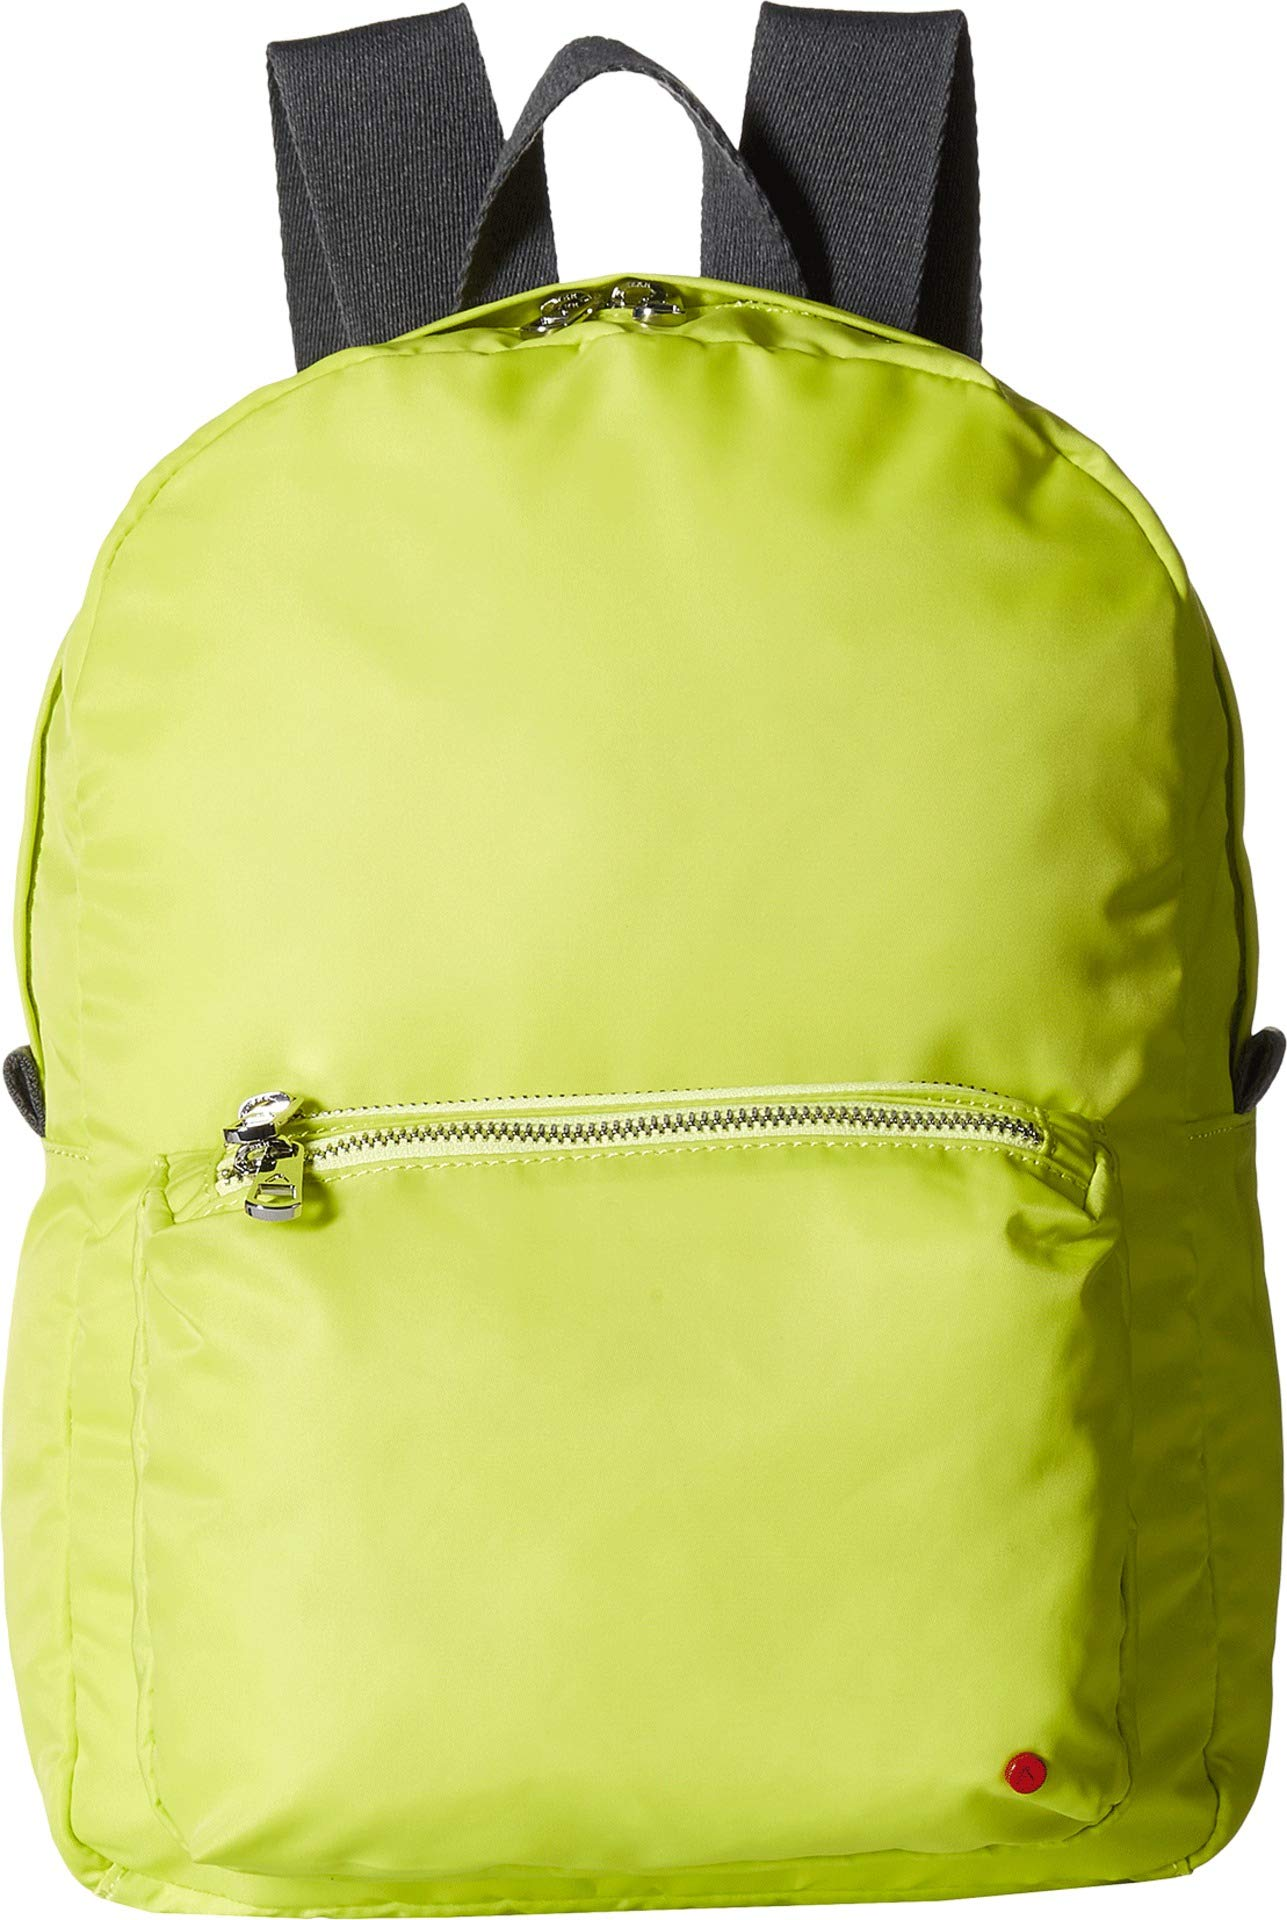 STATE Women's Mini Lorimer Backpack, Chartreuse, Yellow, One Size by STATE Bags